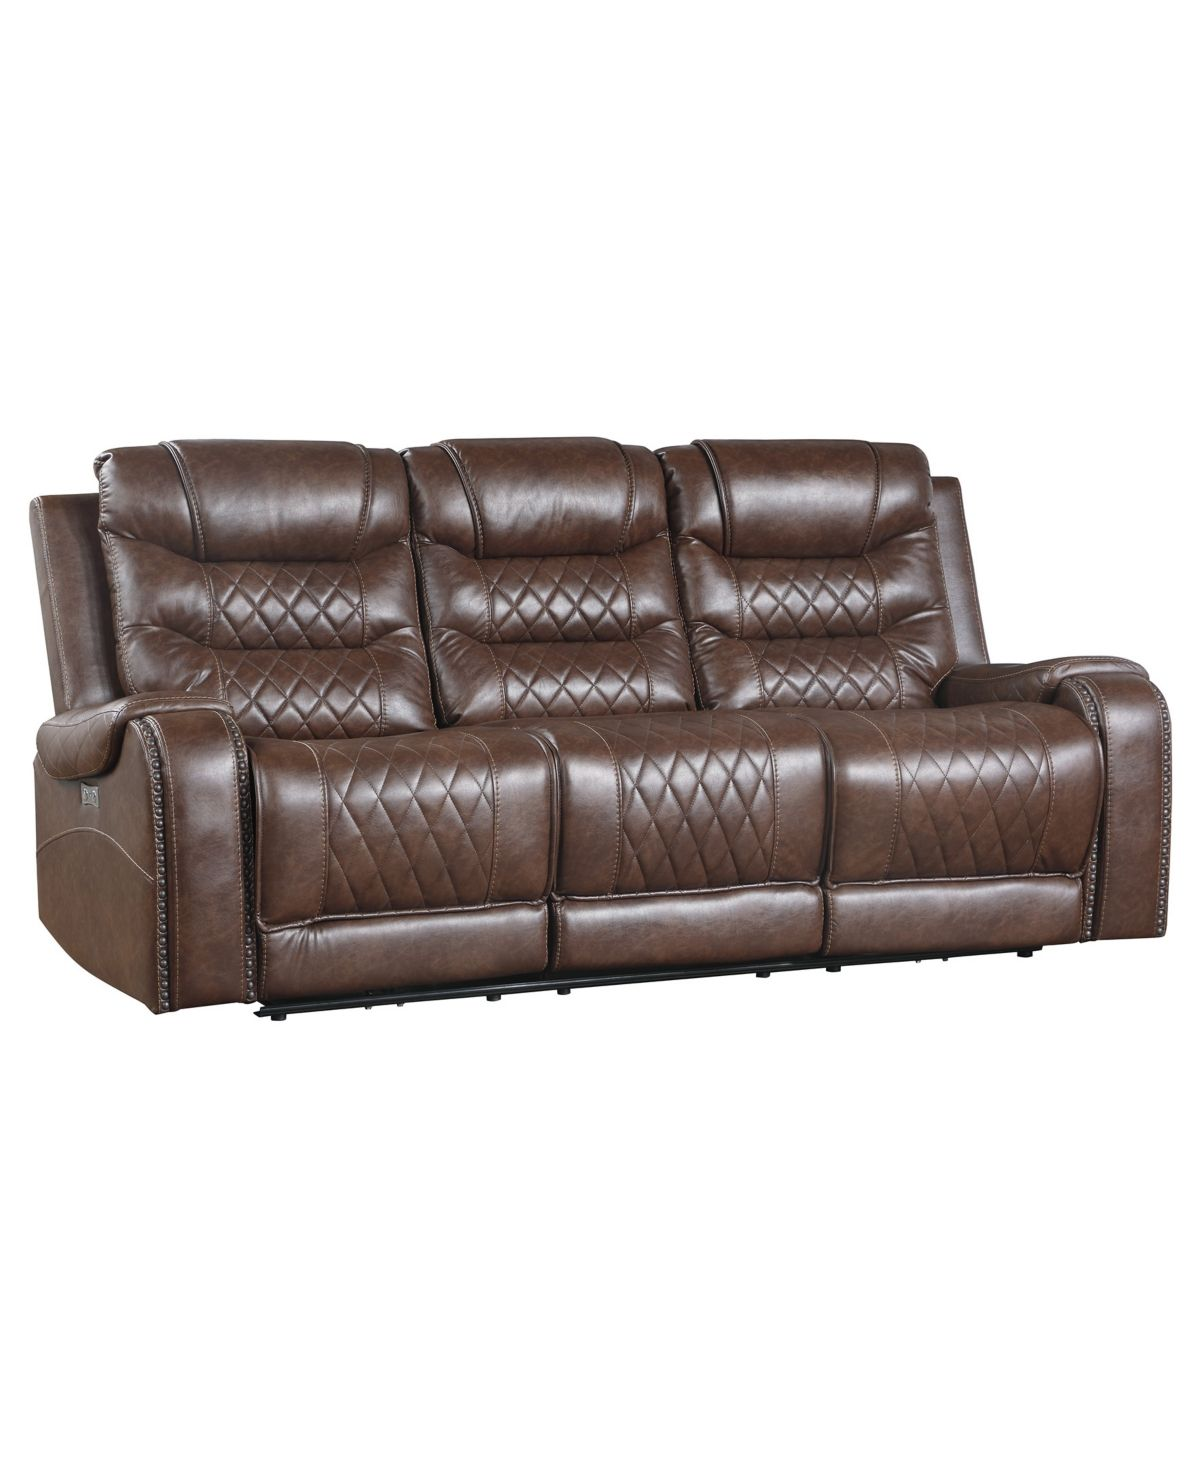 Bailey Recliner Sofa Brown In